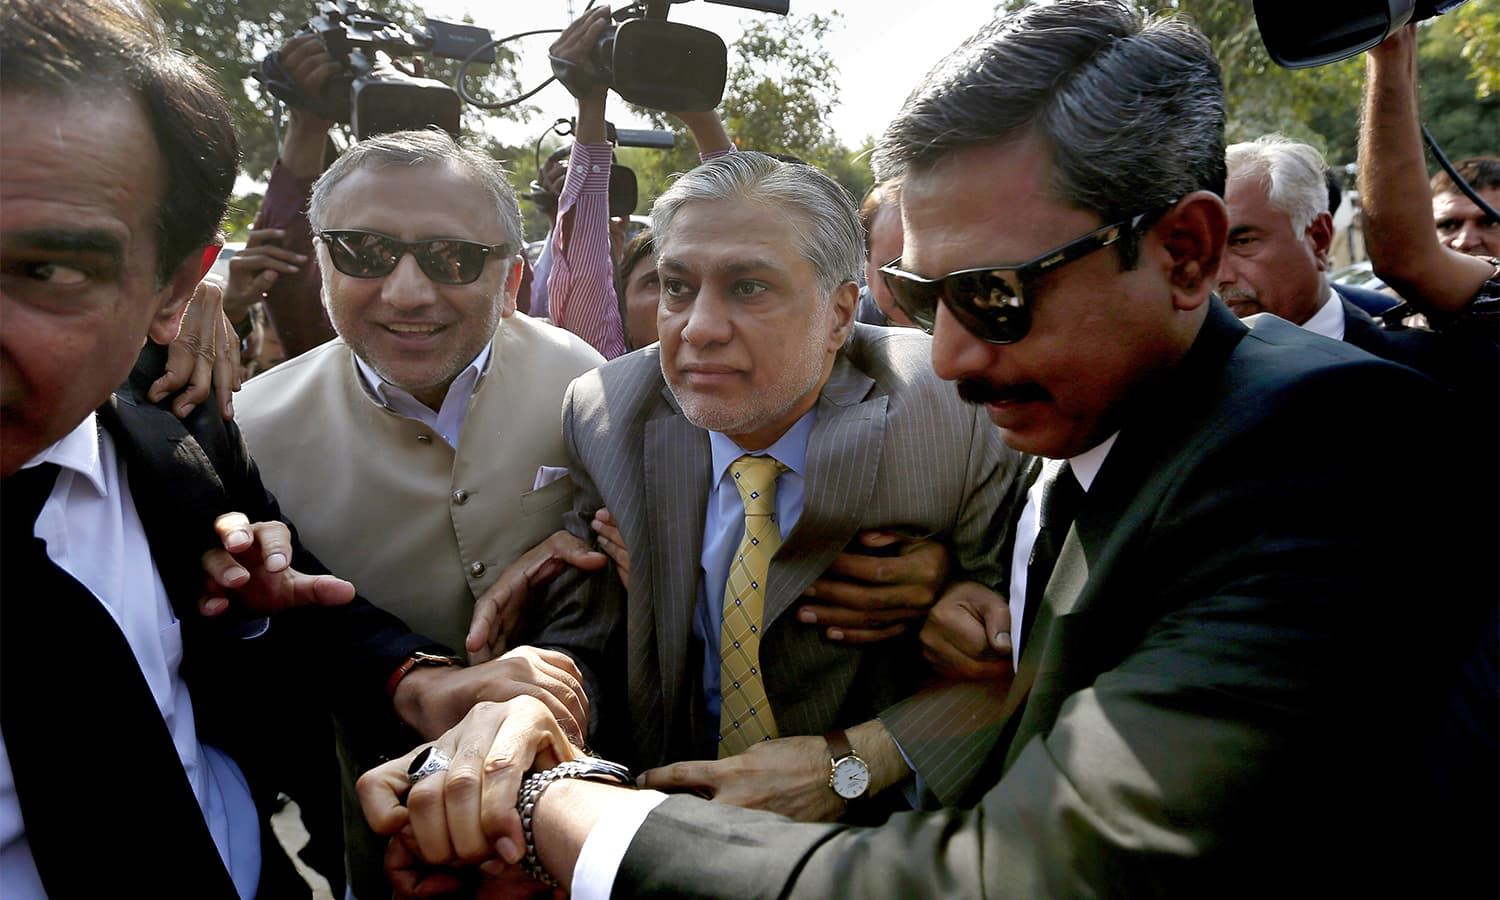 Finance Minister Ishaq Dar, centre, arrives with his lawyer Amjad Pervez, right, to appear in an accountability court in Islamabad on Wednesday.— AP